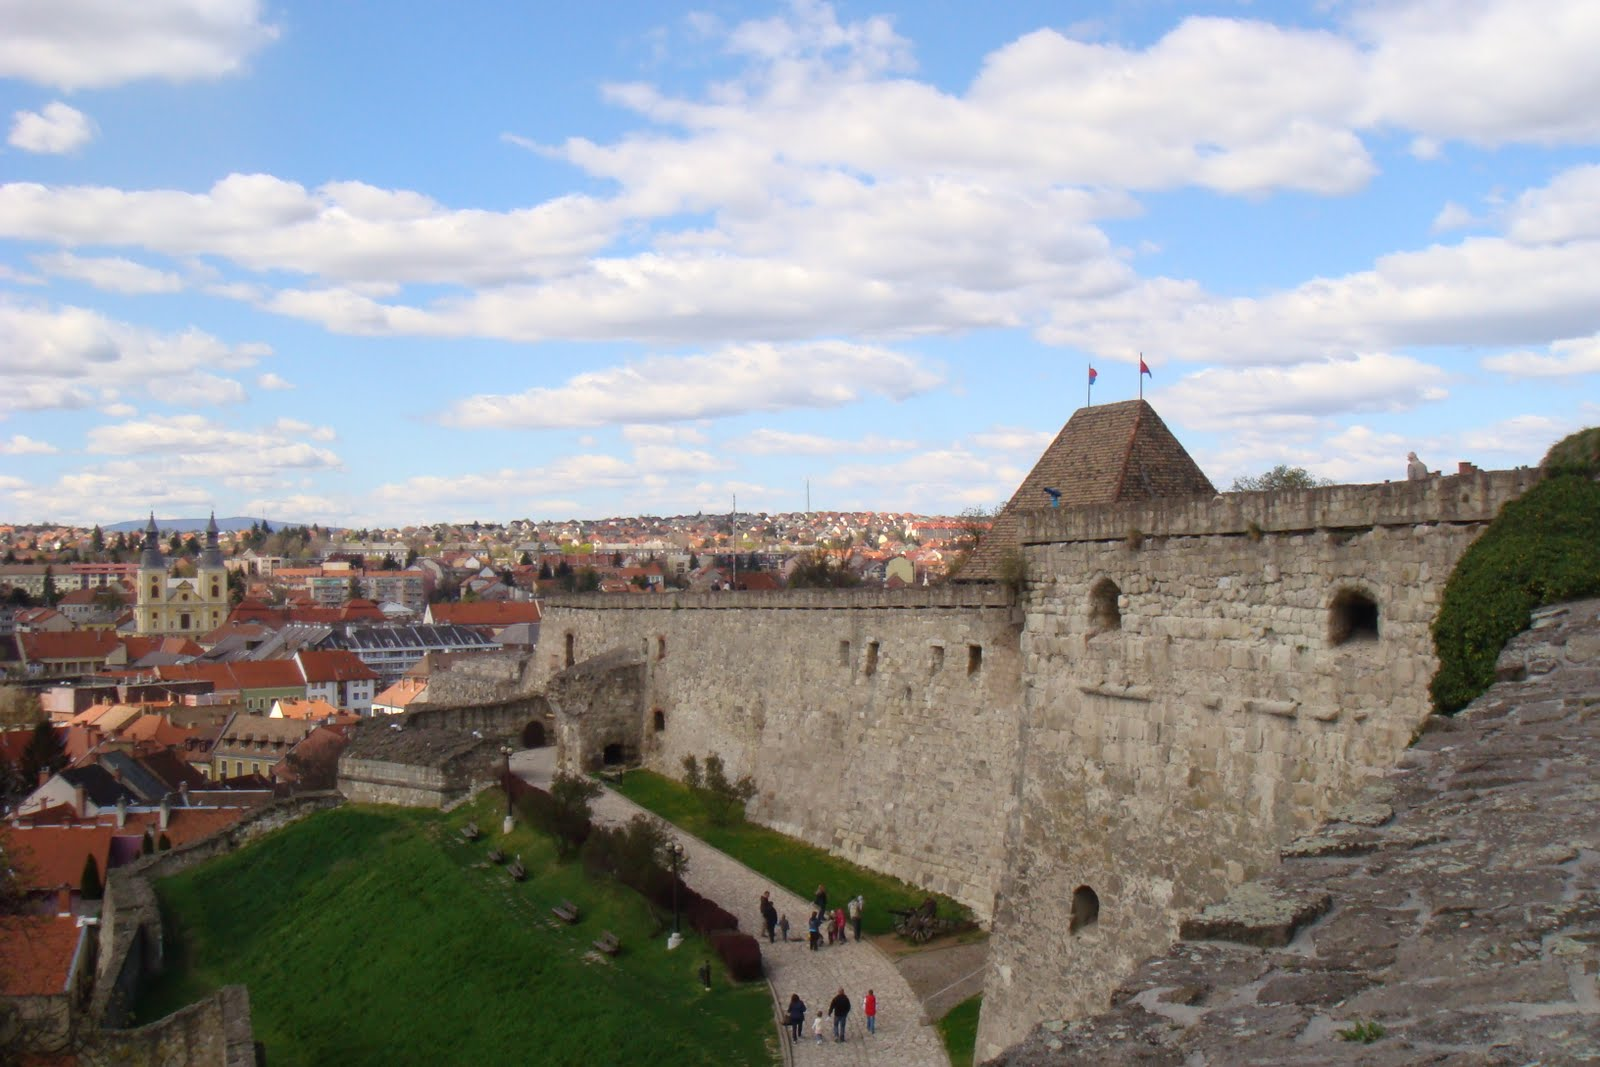 Eger Castle Eger, Eger tour | Travel Guide Hungary - Private tours in Budapest and ...